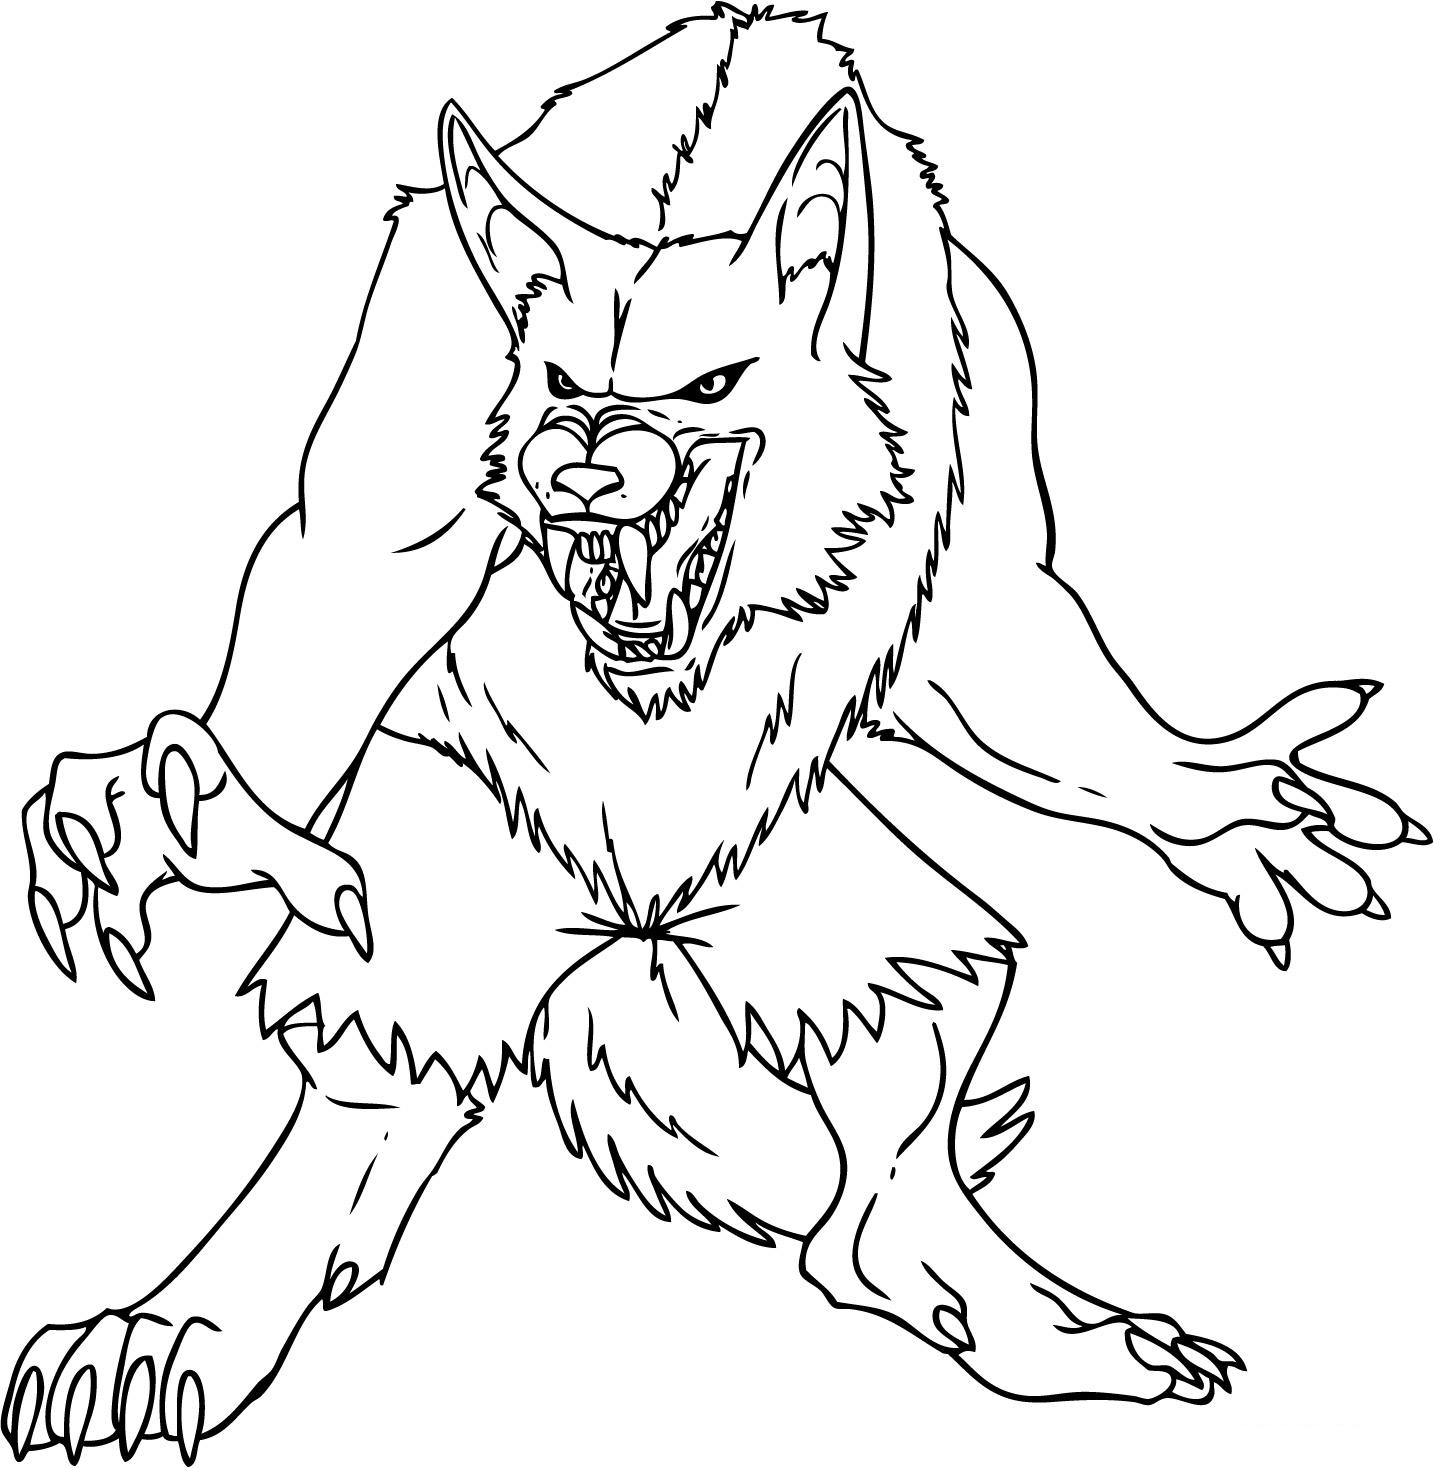 werewolf coloring pages printable free werewolf coloring pages coloring home printable werewolf coloring pages